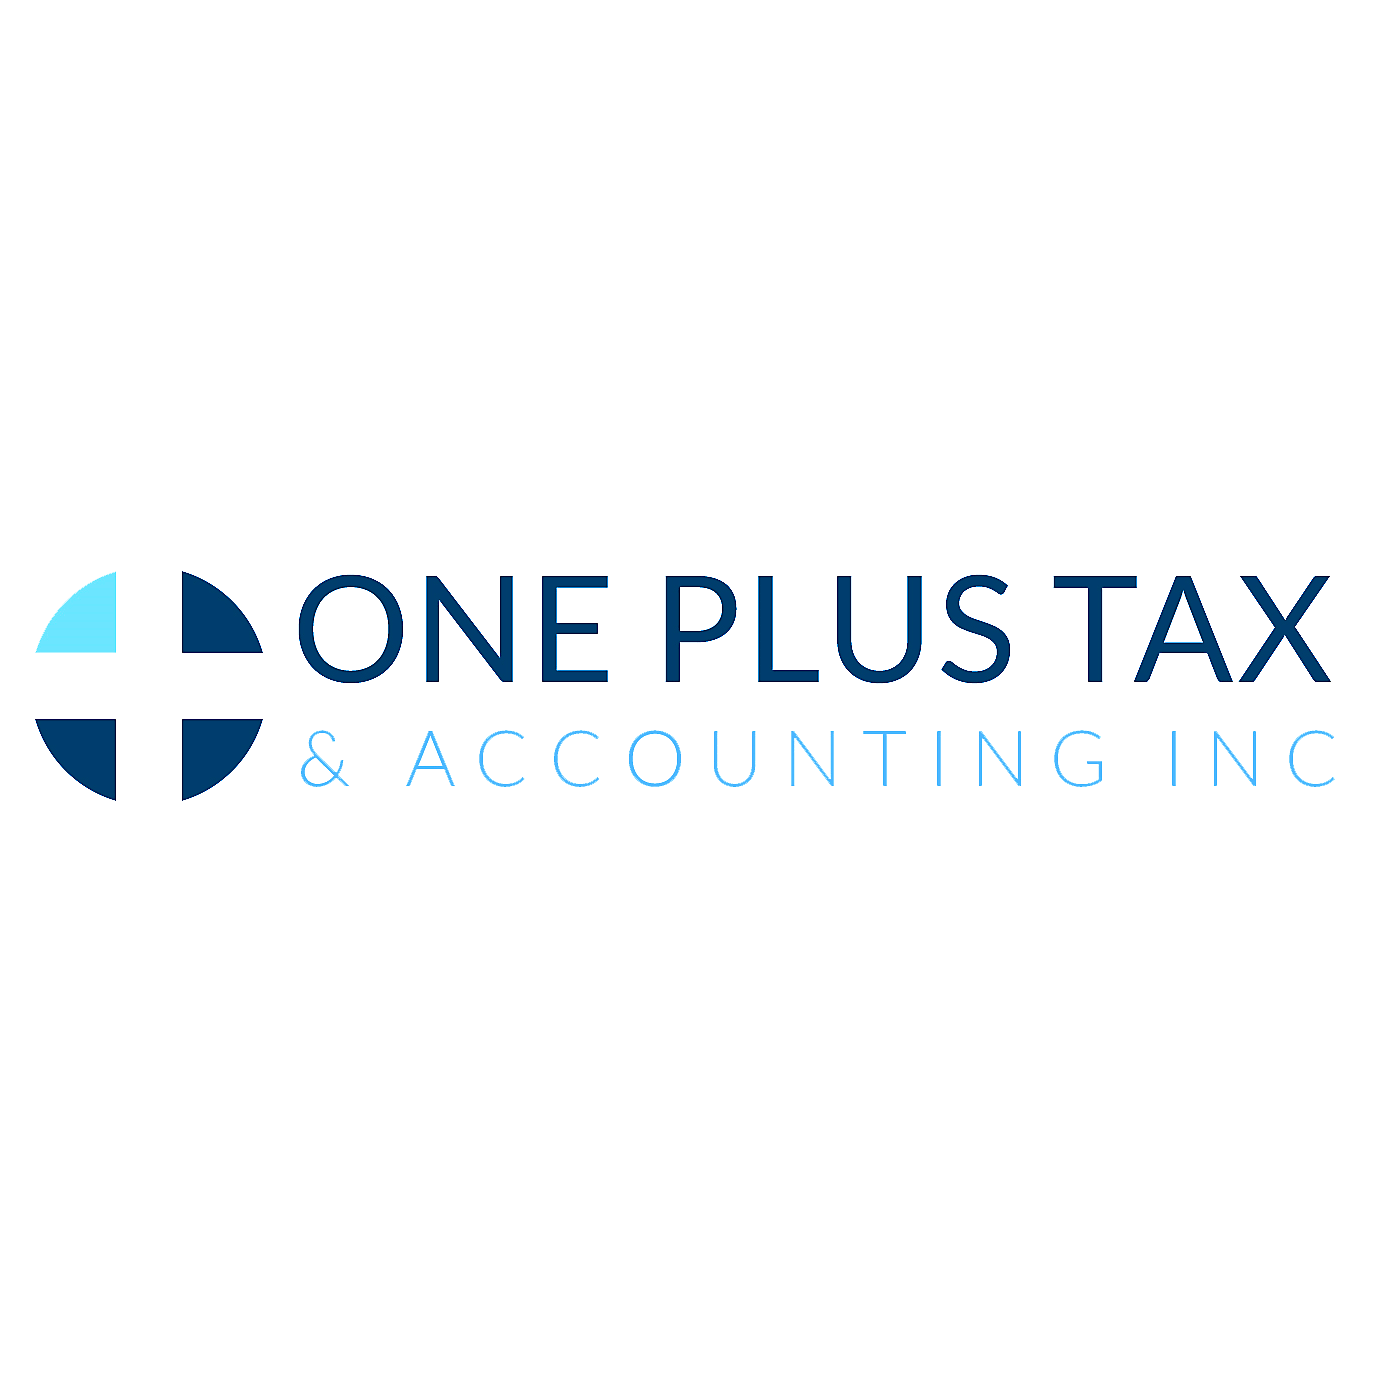 One Plus Tax & Accounting Inc